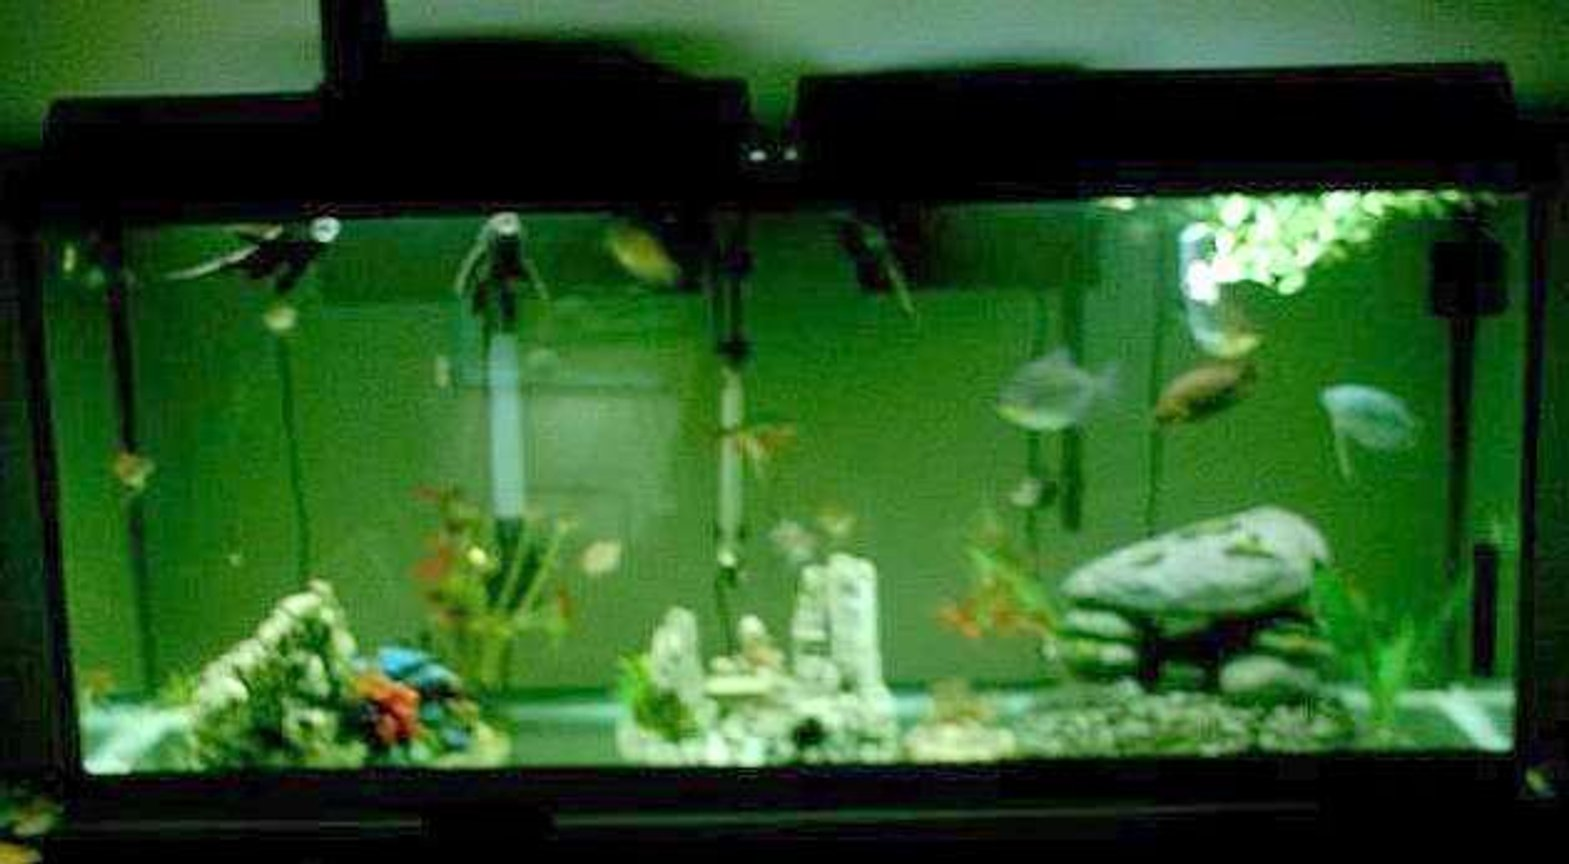 75 gallons freshwater fish tank (mostly fish and non-living decorations) - 55g freesh it's all about the fish